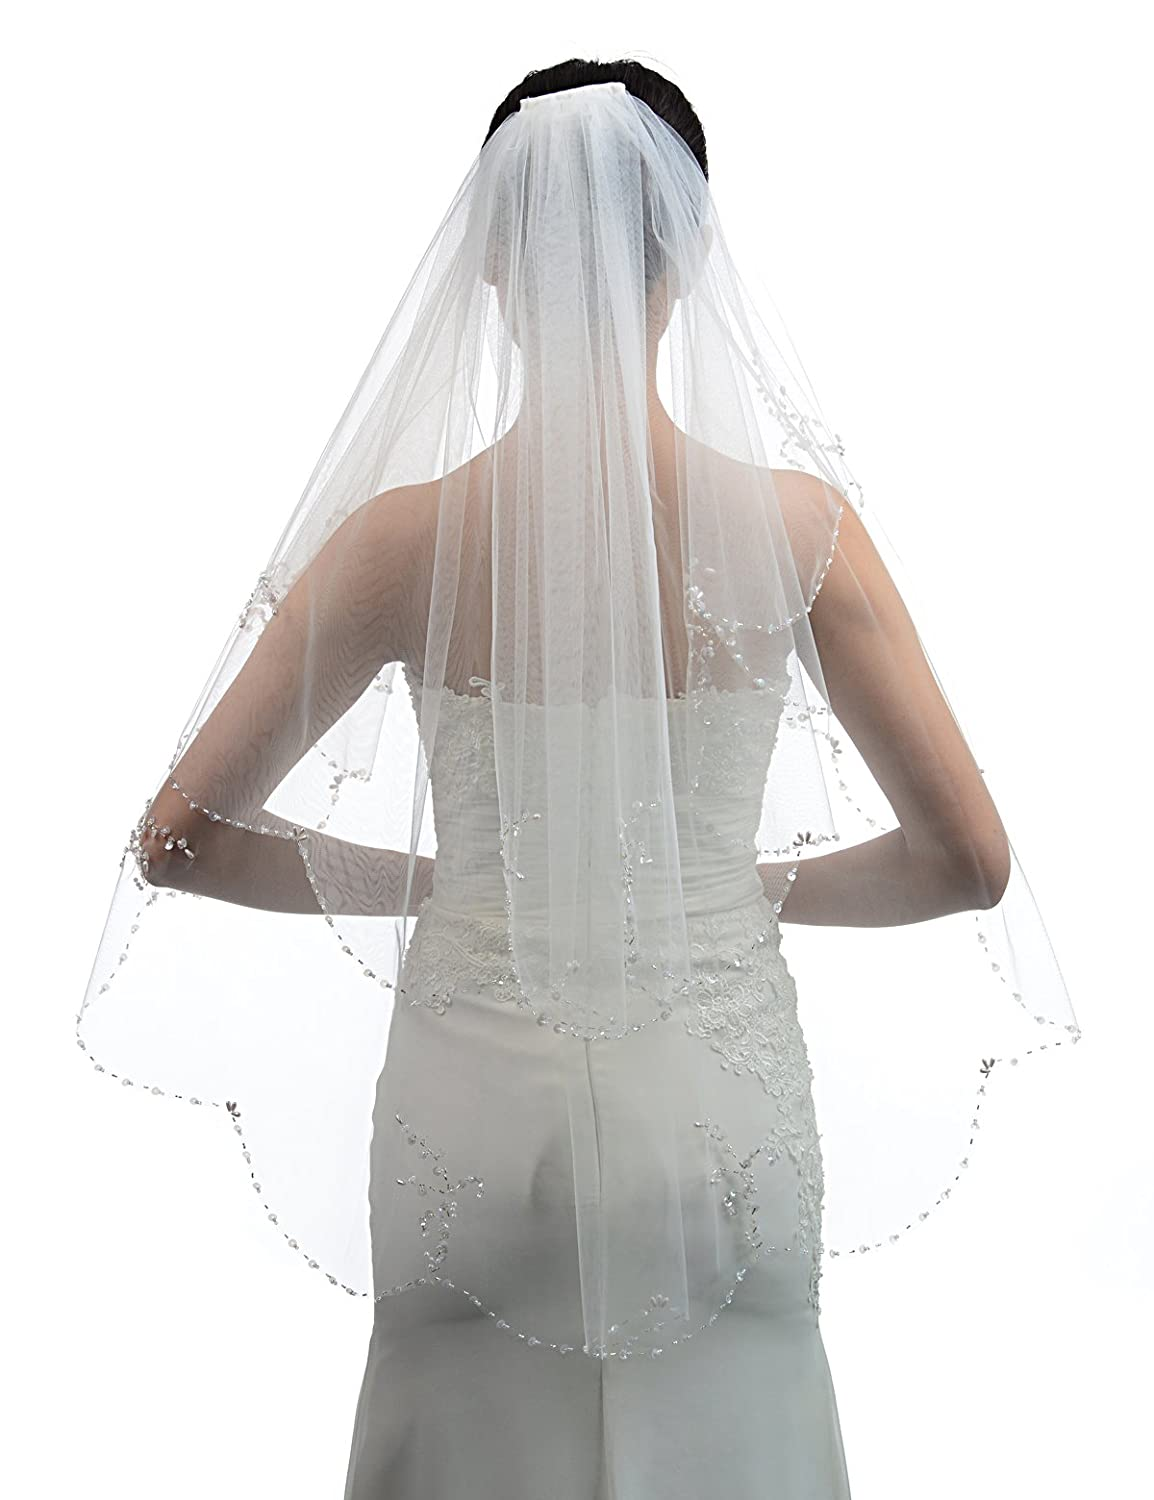 SWEETV 2 Tiers Sequin Pearl Trim Edge Wedding Veil Elbow Length Beaded Bridal Veil - Ivory -: Amazon.co.uk: Clothing